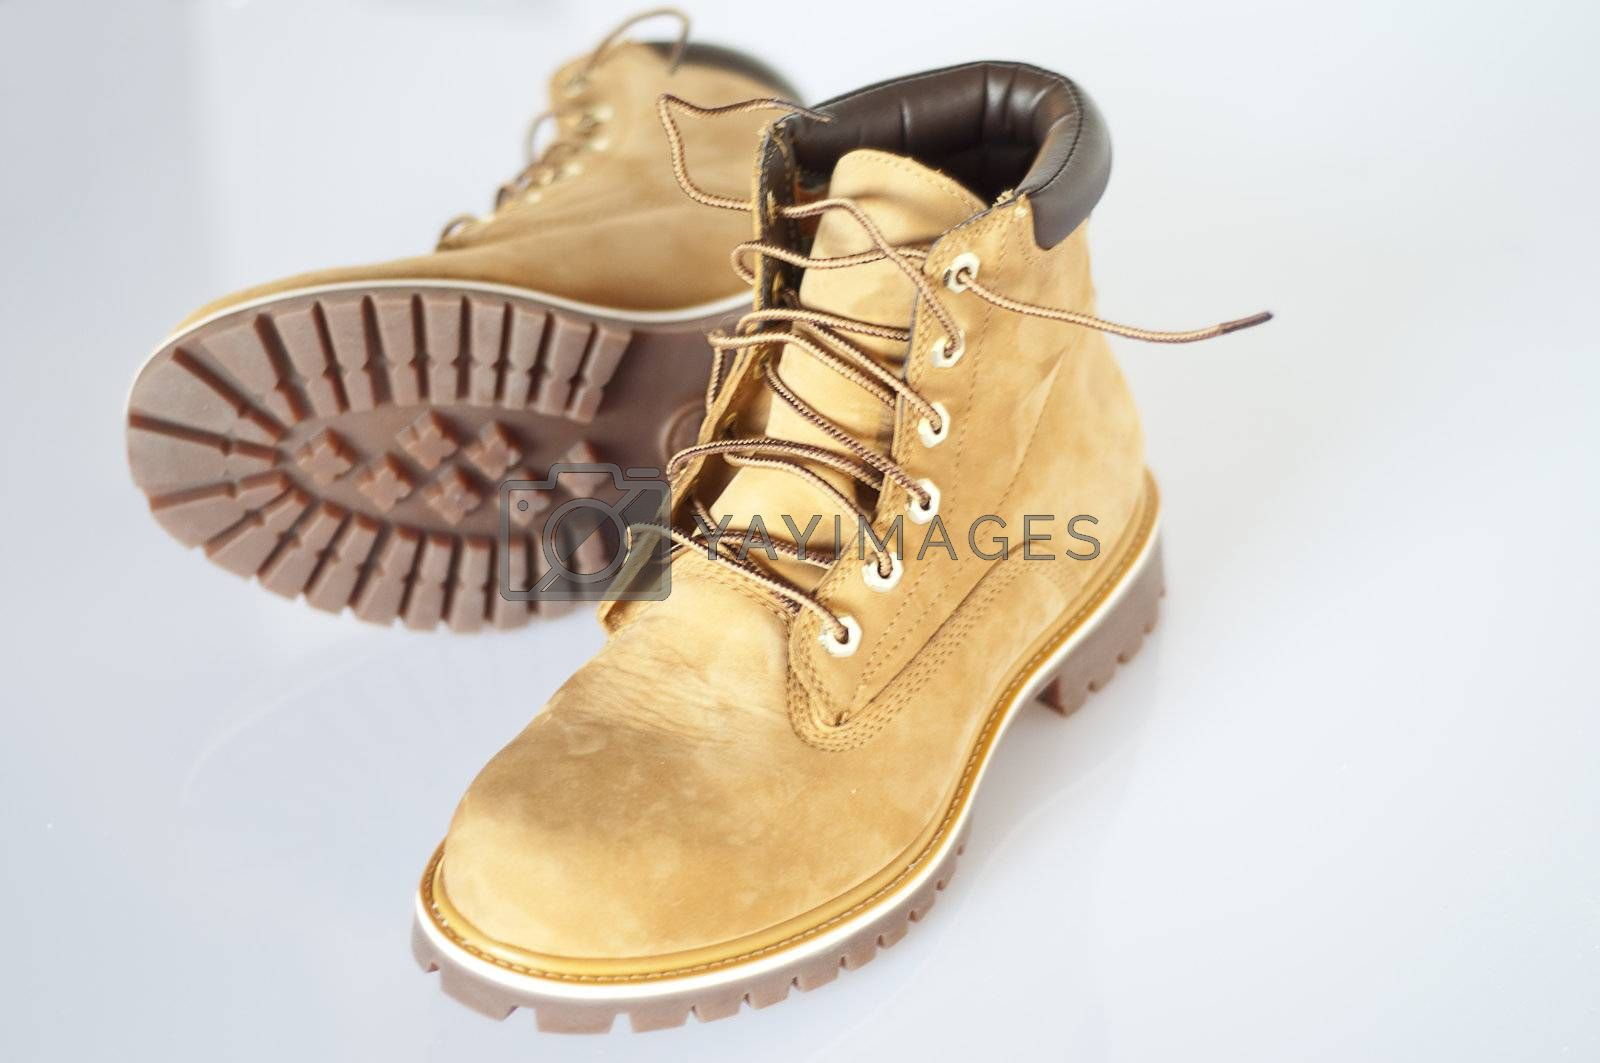 a pair of men\u0026#39;s leather boots with rubber soles